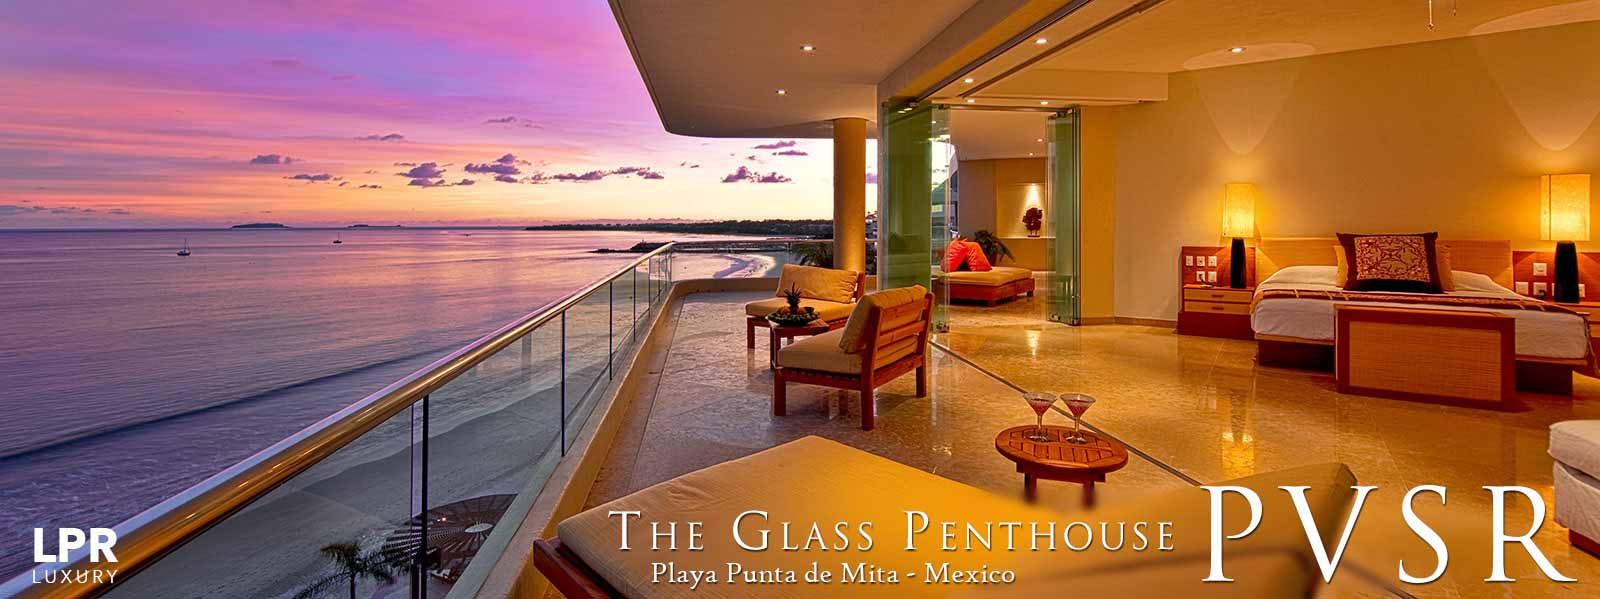 PVSR - The Glass Penthouse at Punta de Mita, Vallarta | Nayarit, Mexico